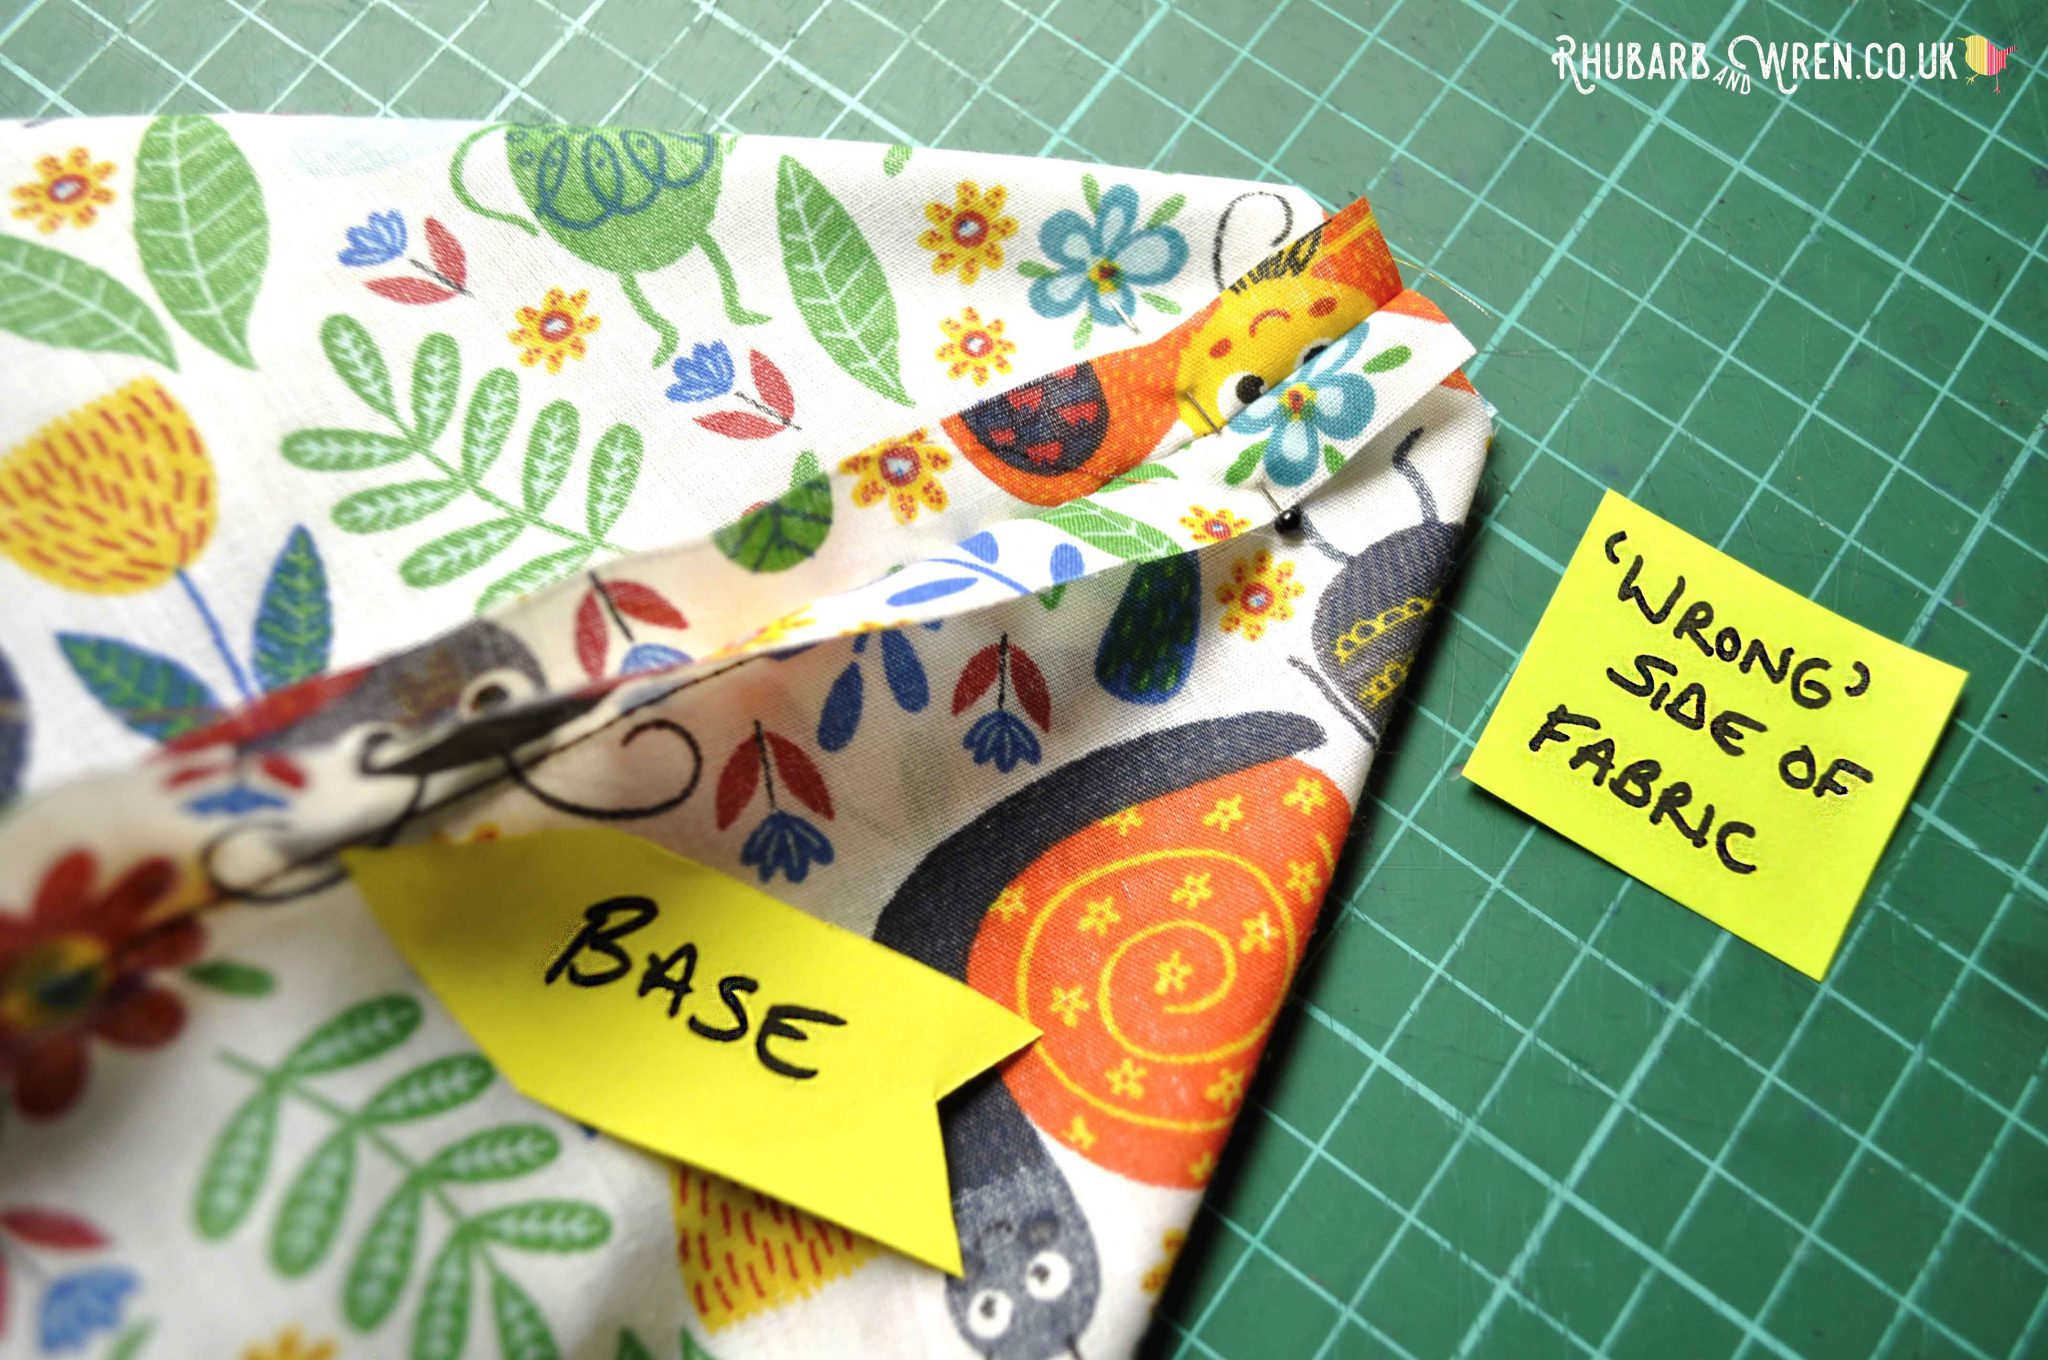 Making a box base on a kids nature explorer bag sewing project